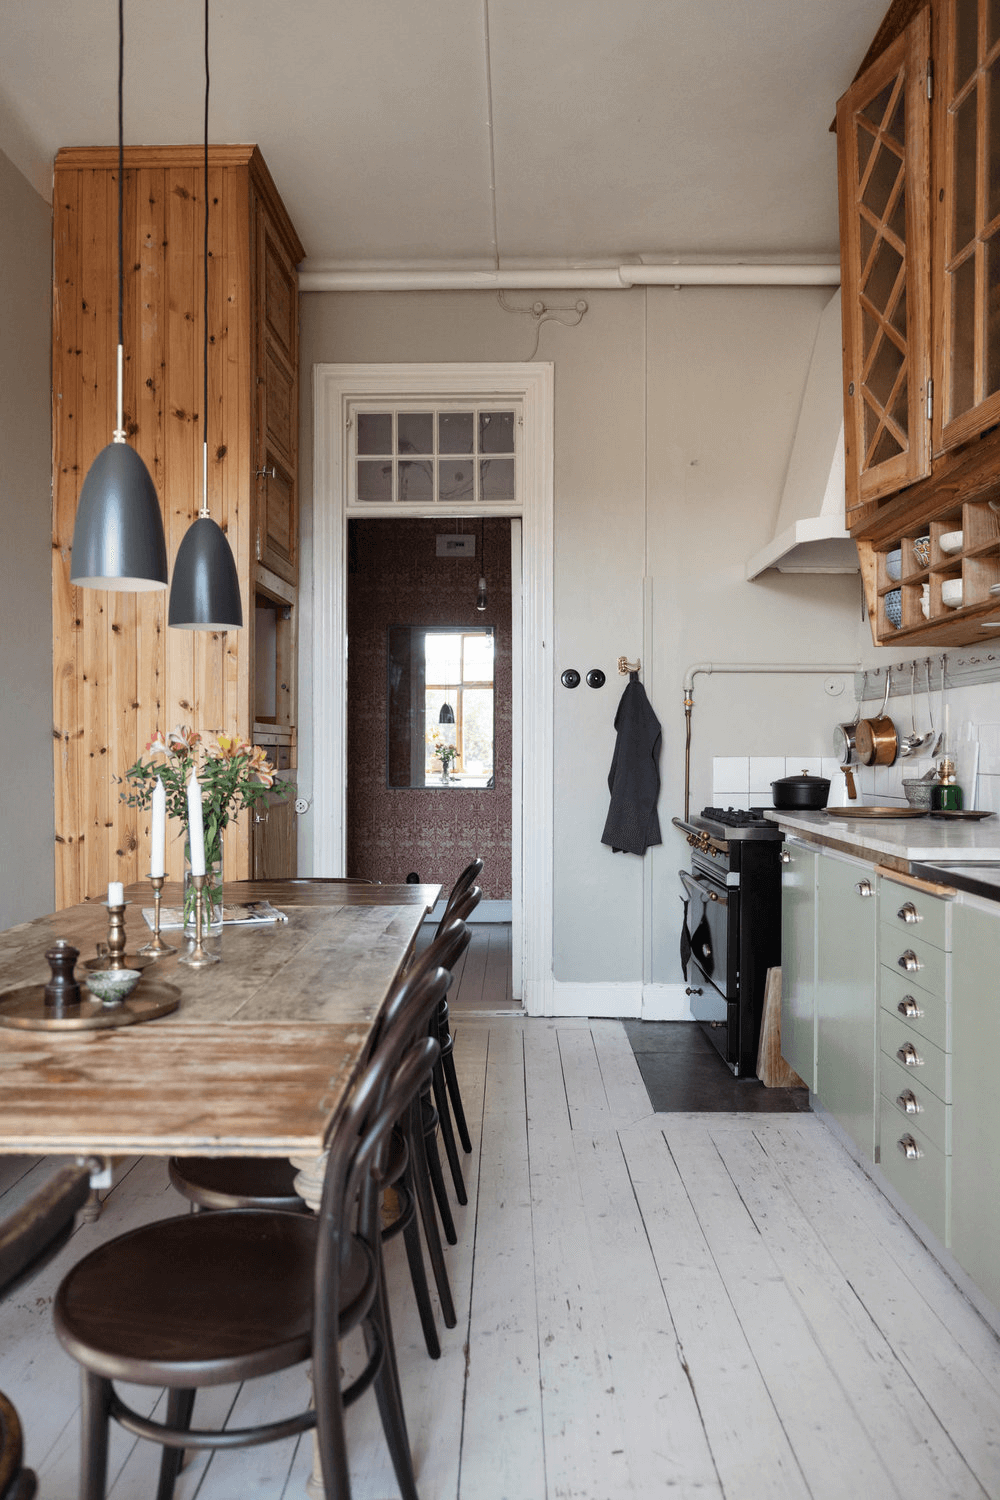 this is a scandinavian styled kitchen in an apartment